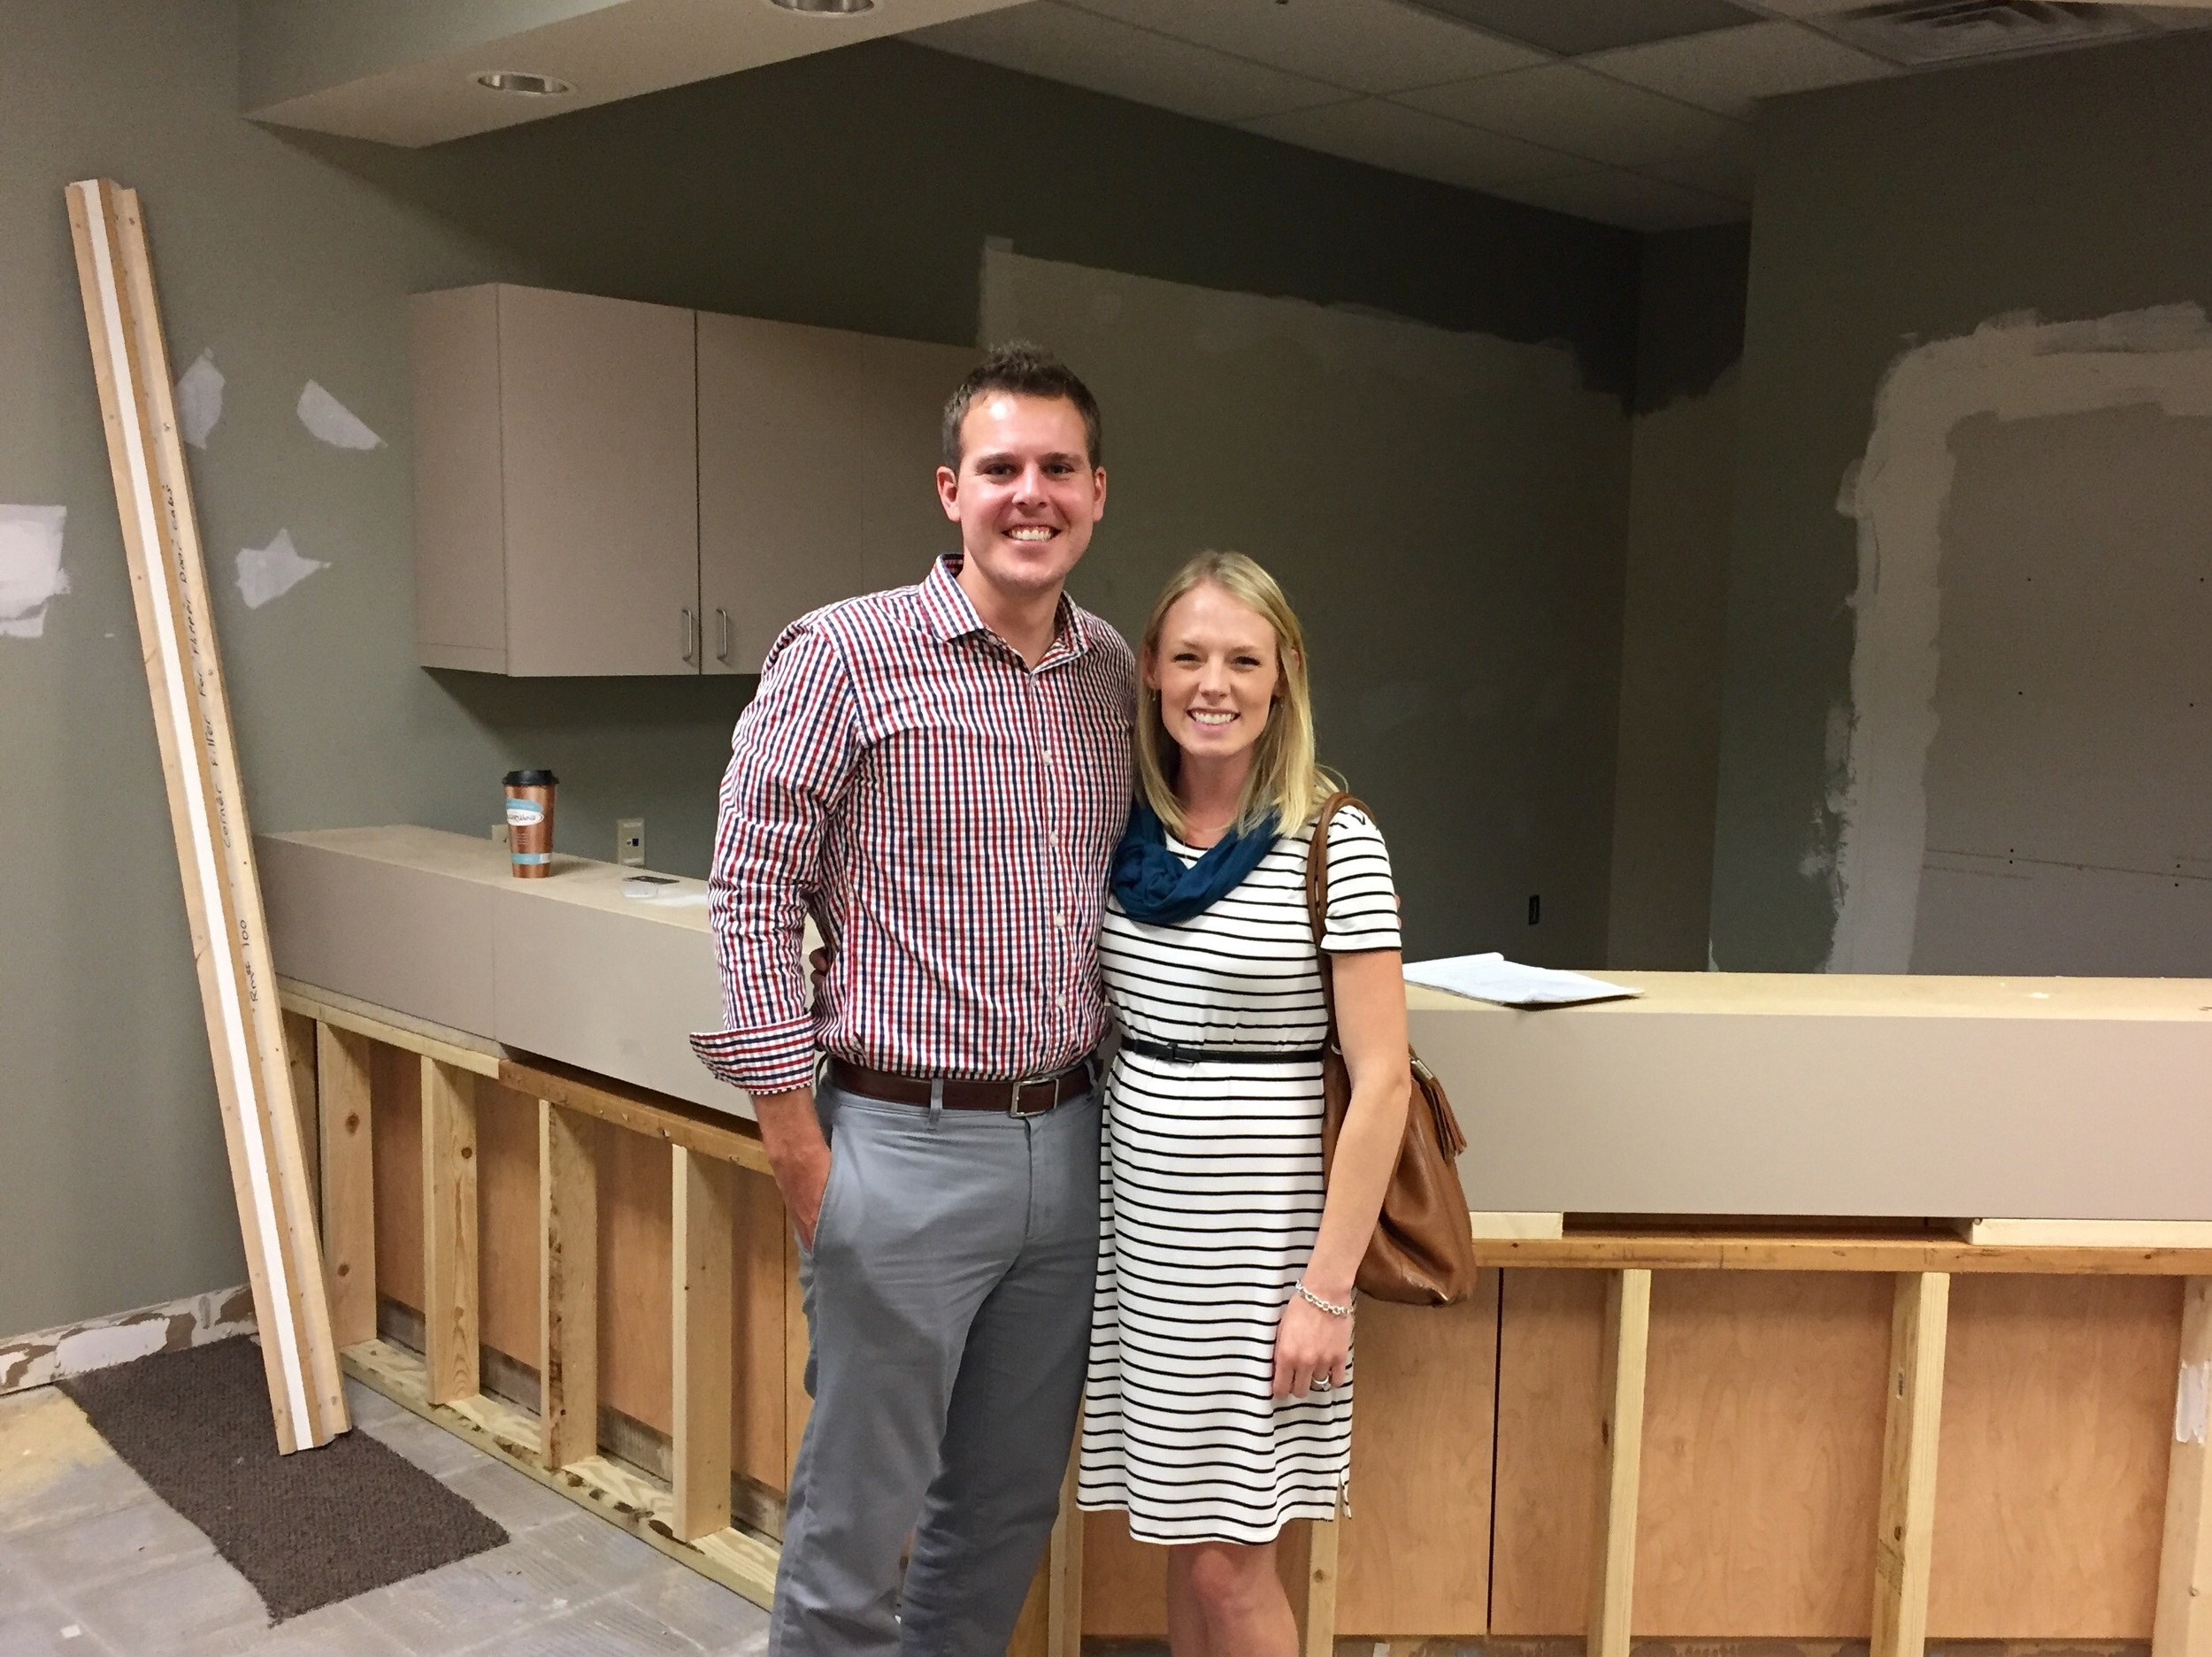 Dr. Matt Penz and wife, Kate, in the waiting room of the new dental office. Renovations began on July 5, 2016.